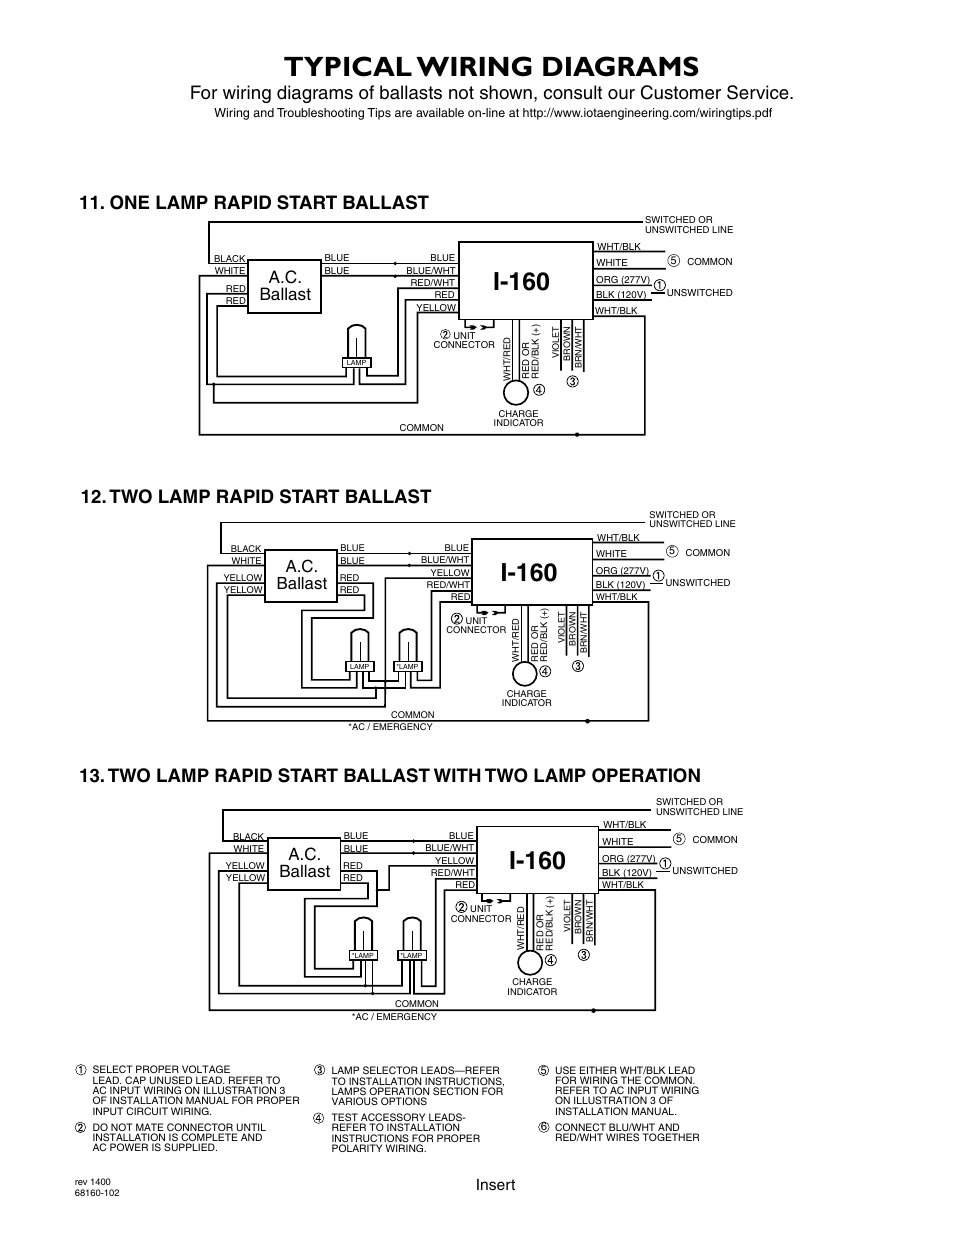 I32 Emergency Ballast Wiring Diagram